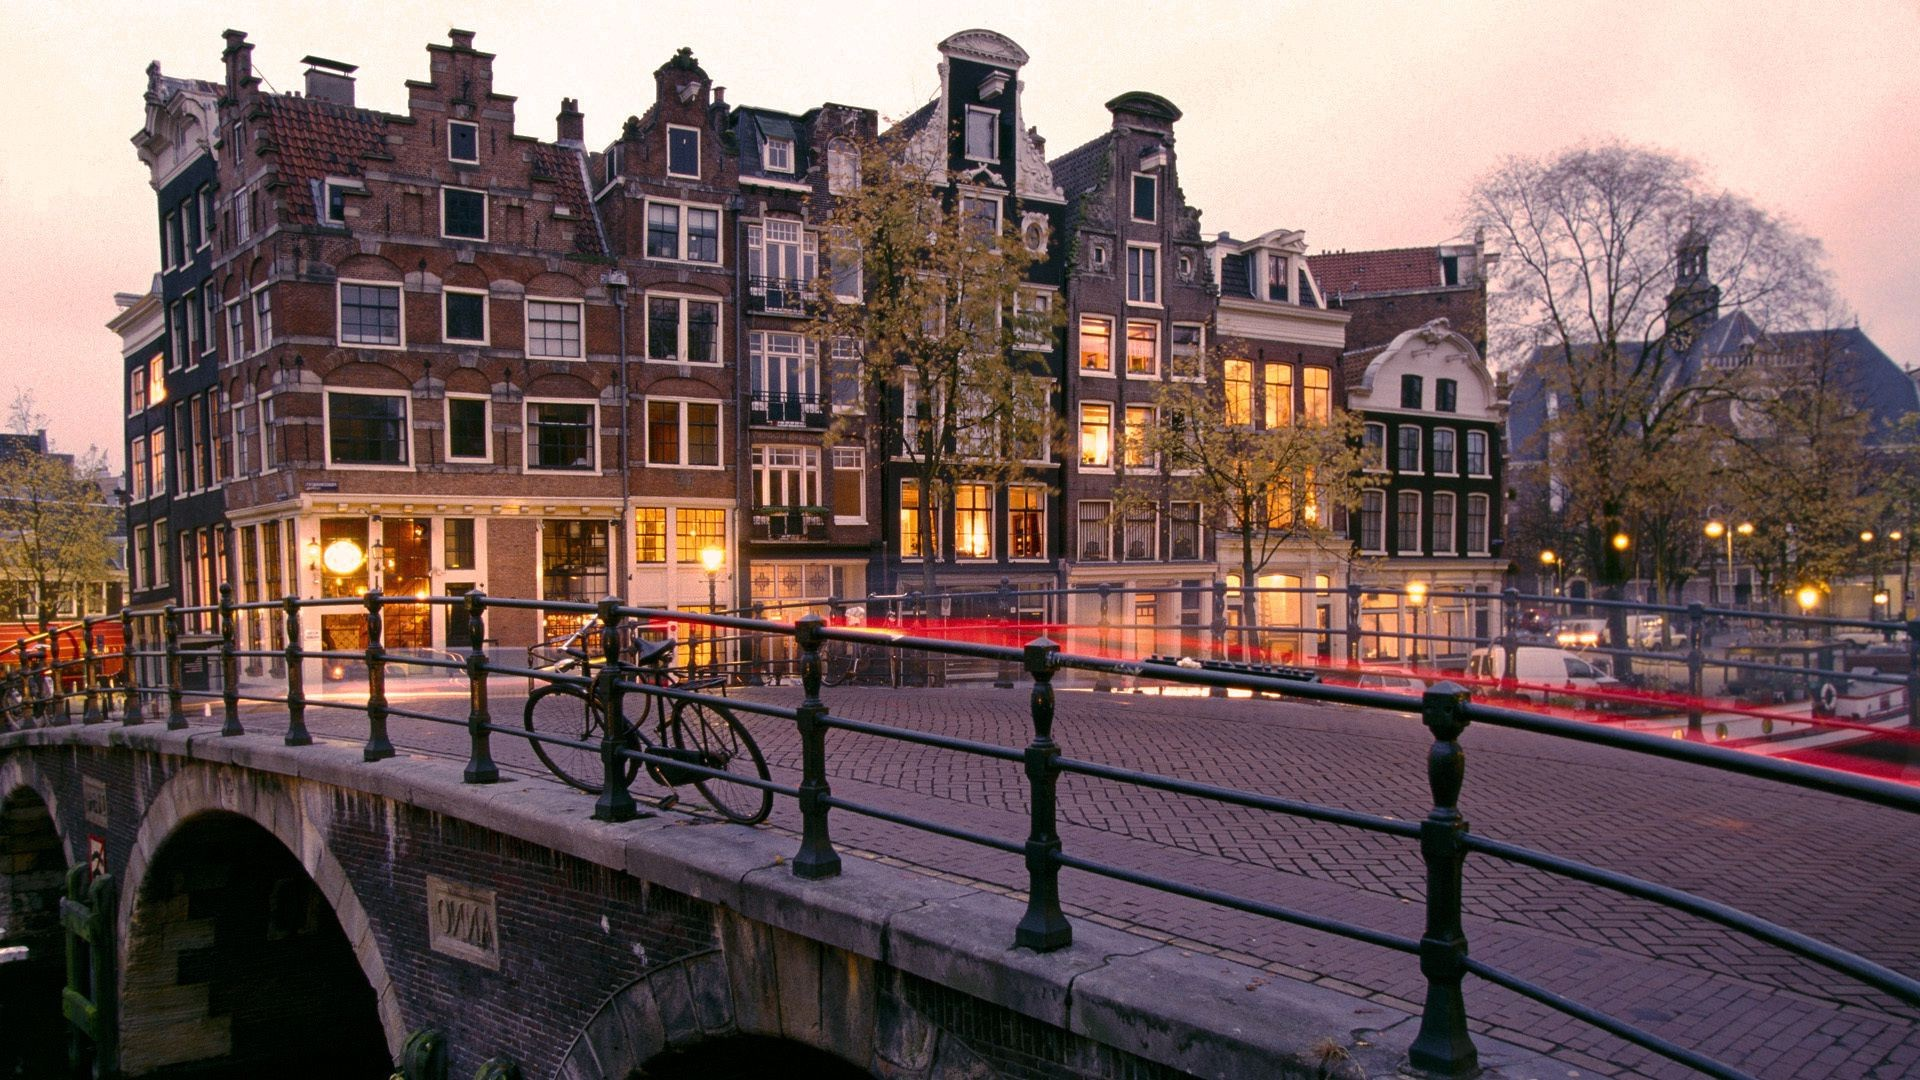 Prinsengracht and brouwersgracht canals, Amsterdam netherla